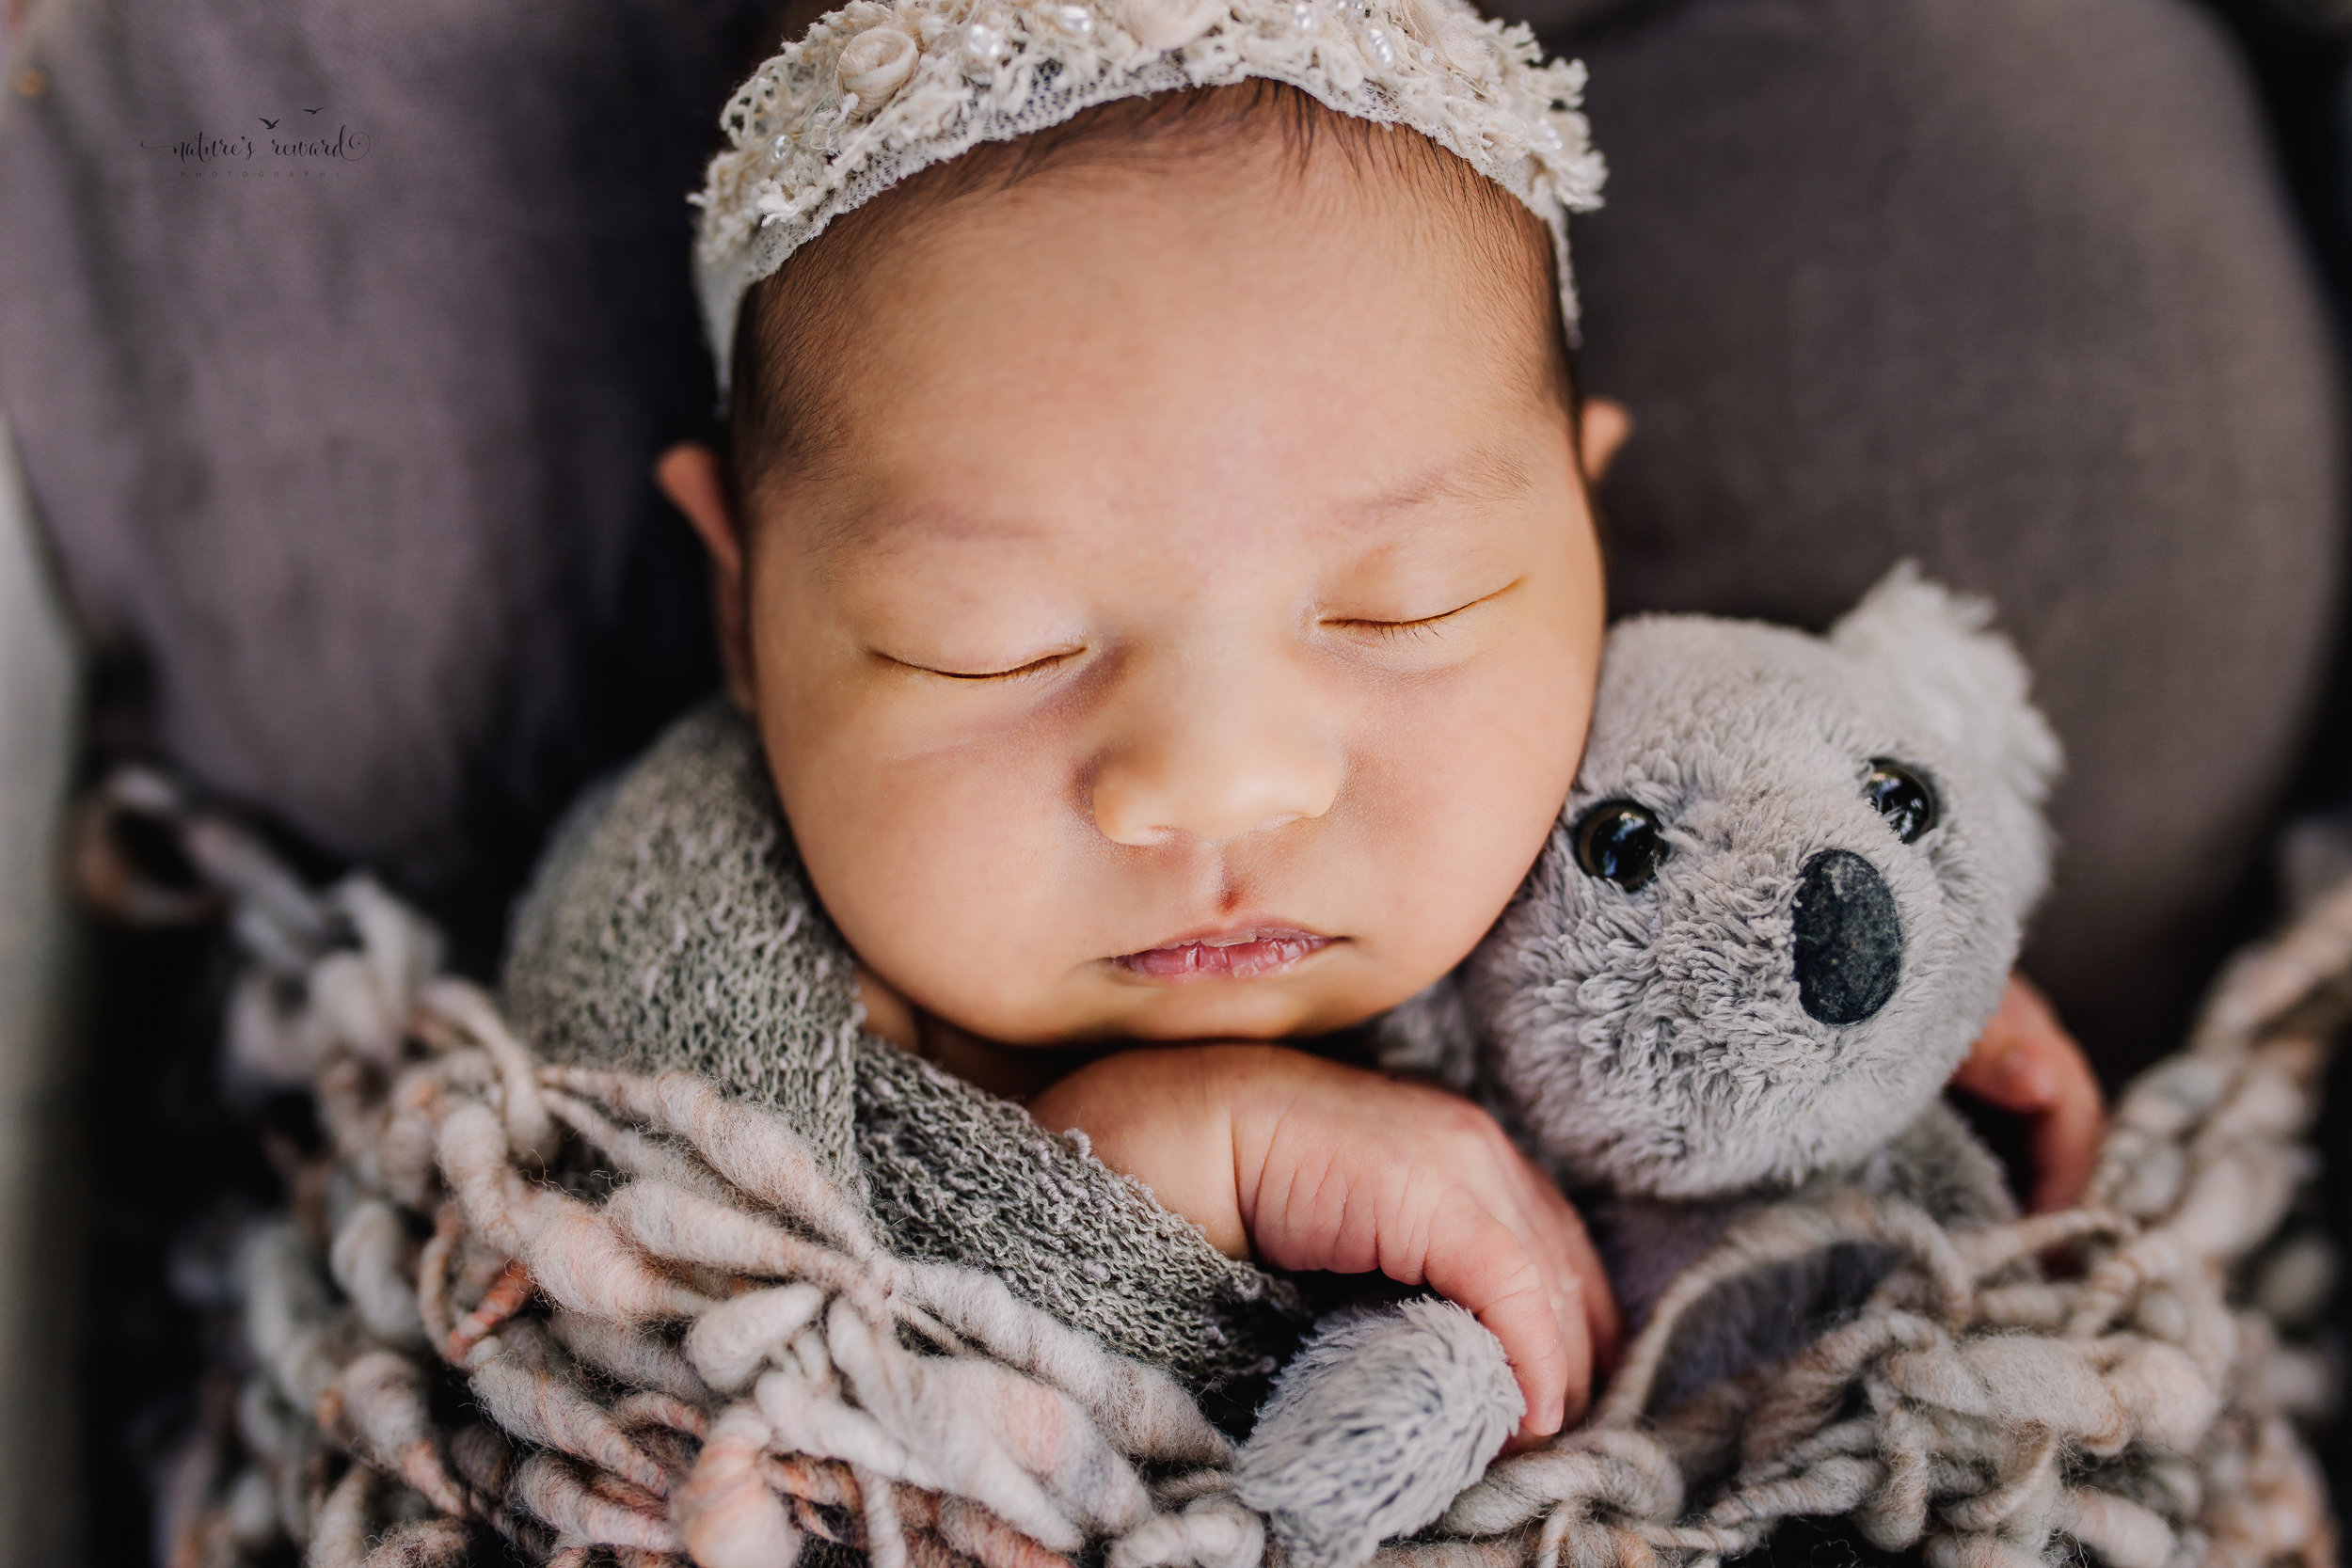 Gorgeous baby newborn girl swaddled in neutral wearing a white tie back and in a garden surrounded by lush greens in this portrait by Nature's Reward Photography